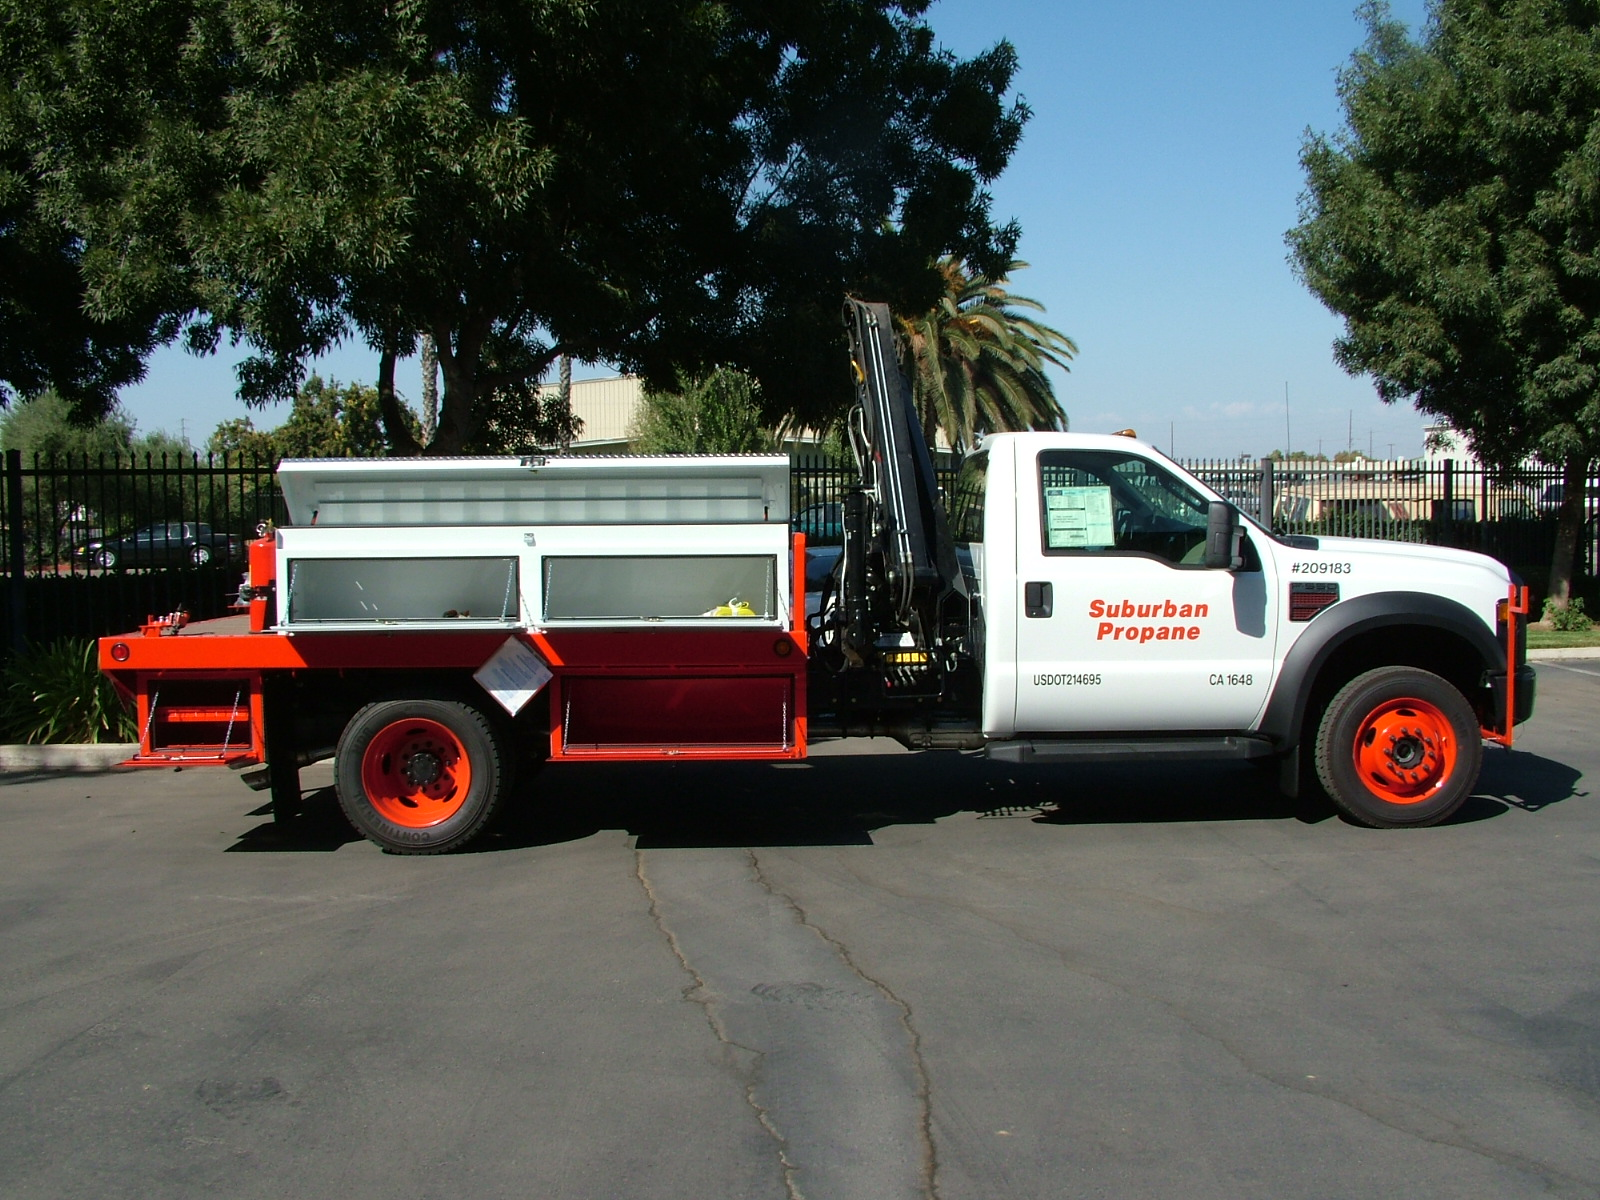 This Is A Propane Body Built For Suburban By Scelzi Enterprises Of Fresno Ca It Equipped With An Hiab 055 D3 Clx Loader Crane Knuckle Boom